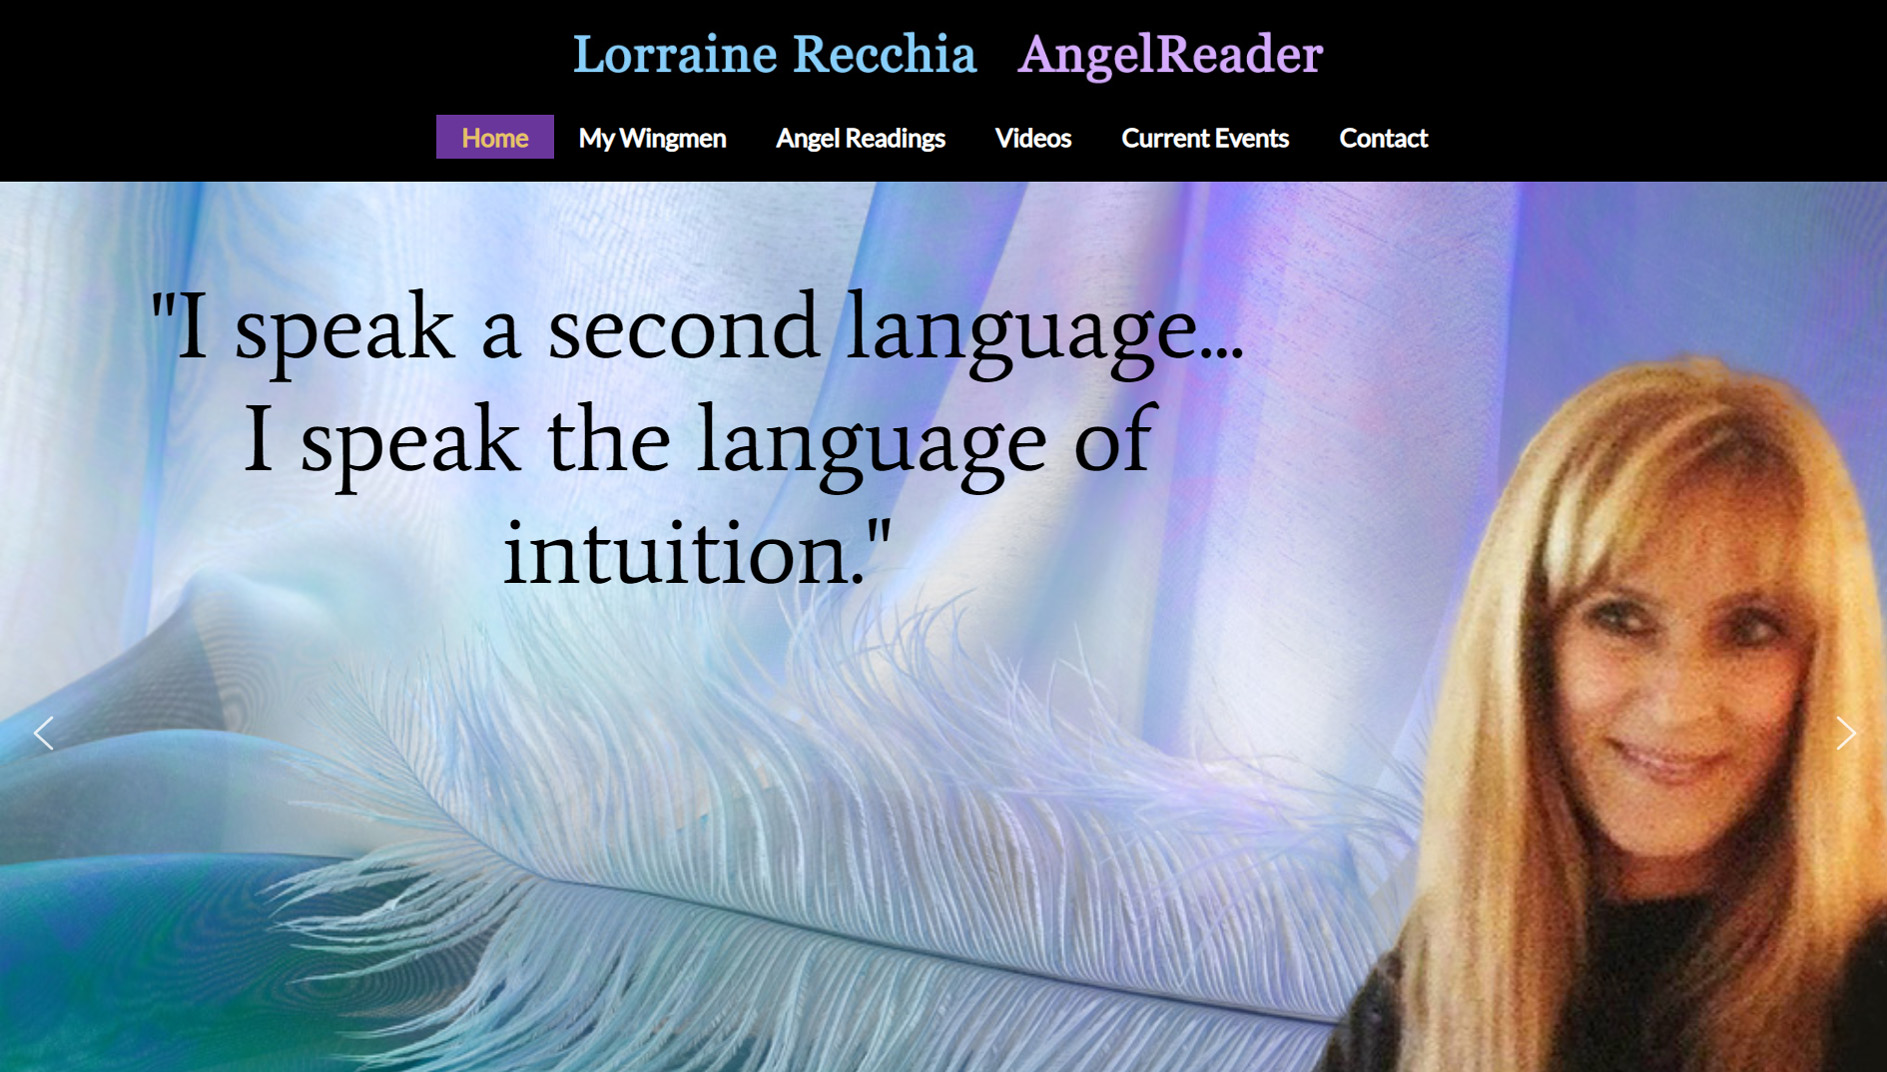 Angel_Reader